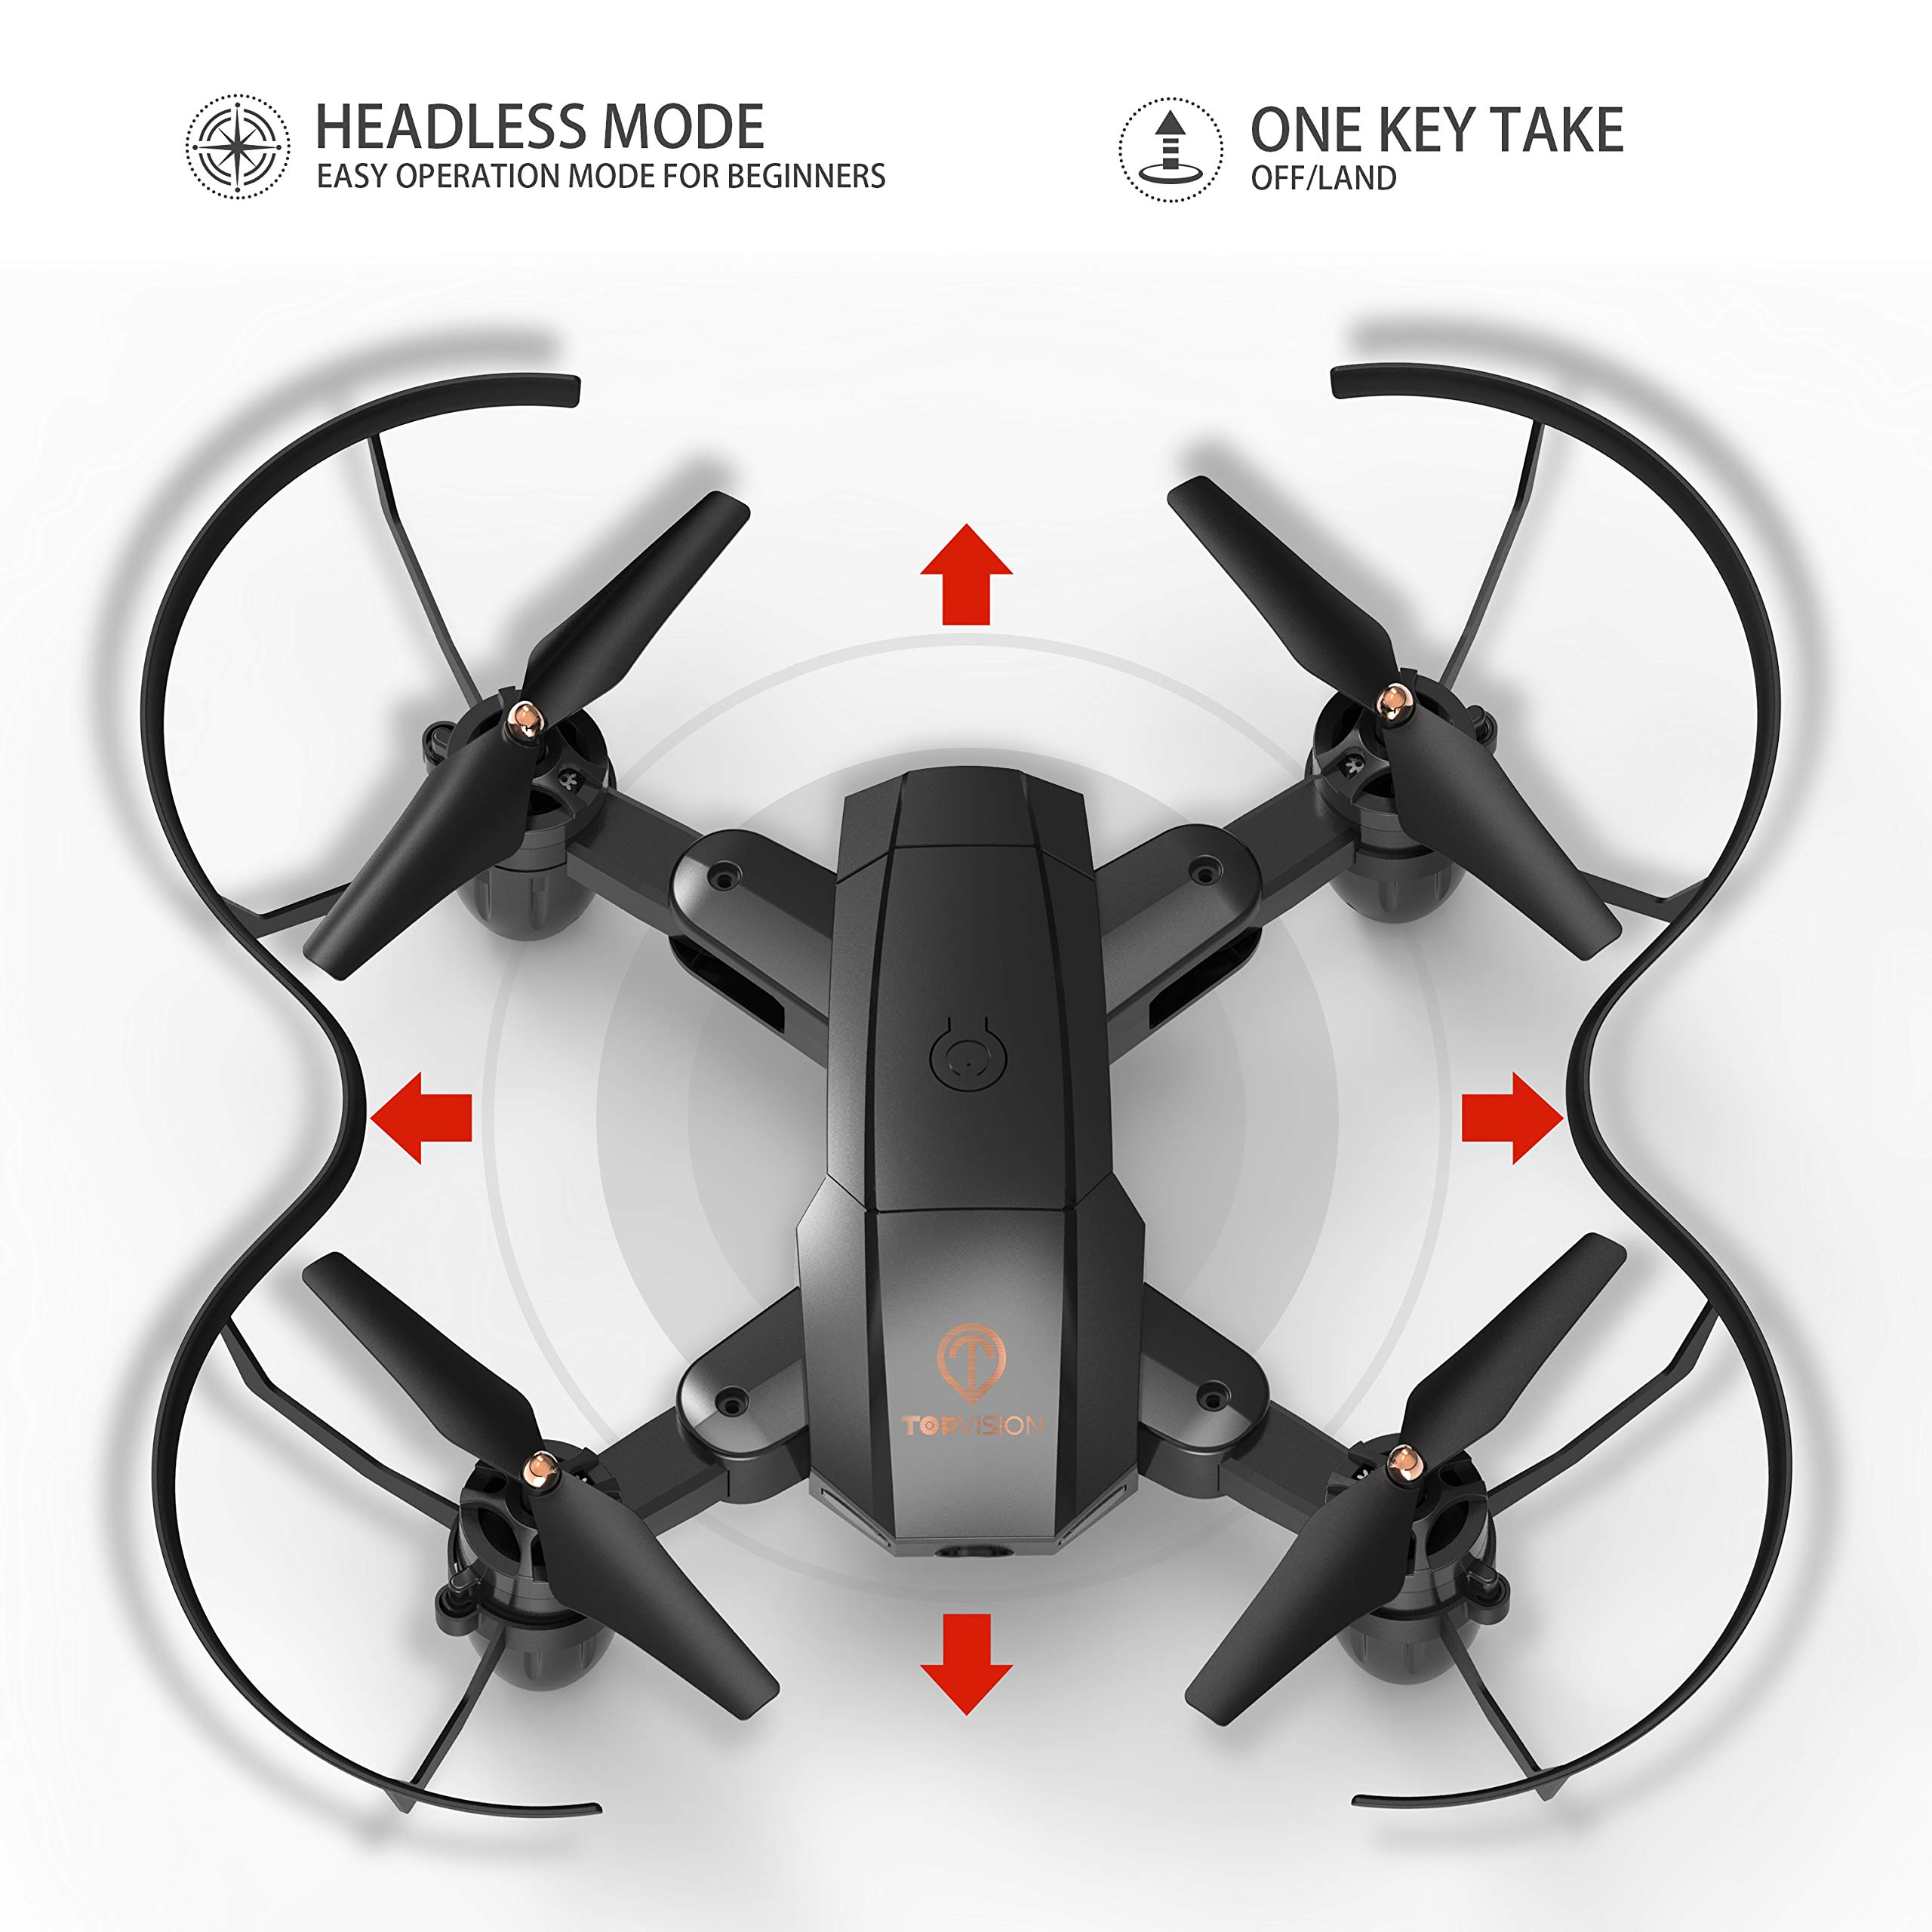 Drone with Camera, TOPVISION Foldable Quadcopter RC Drone with WiFi FPV HD Camera Live Video, Altitude Hold, One Key Start, APP Control, Black by T TOPVISION (Image #6)